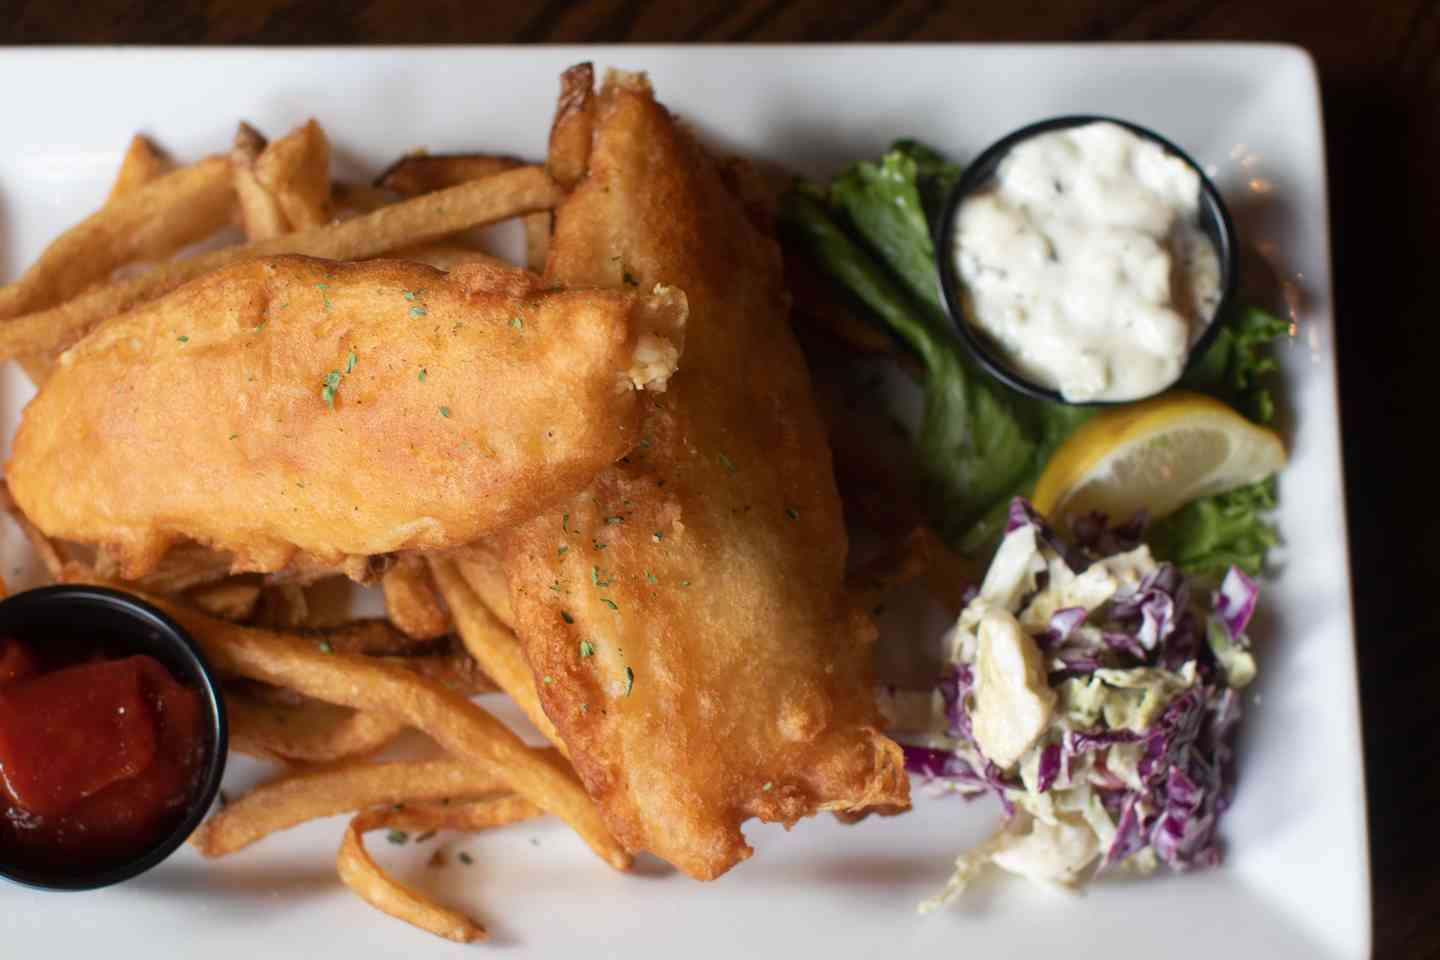 Fish and chips with coleslaw and a lemon wedge